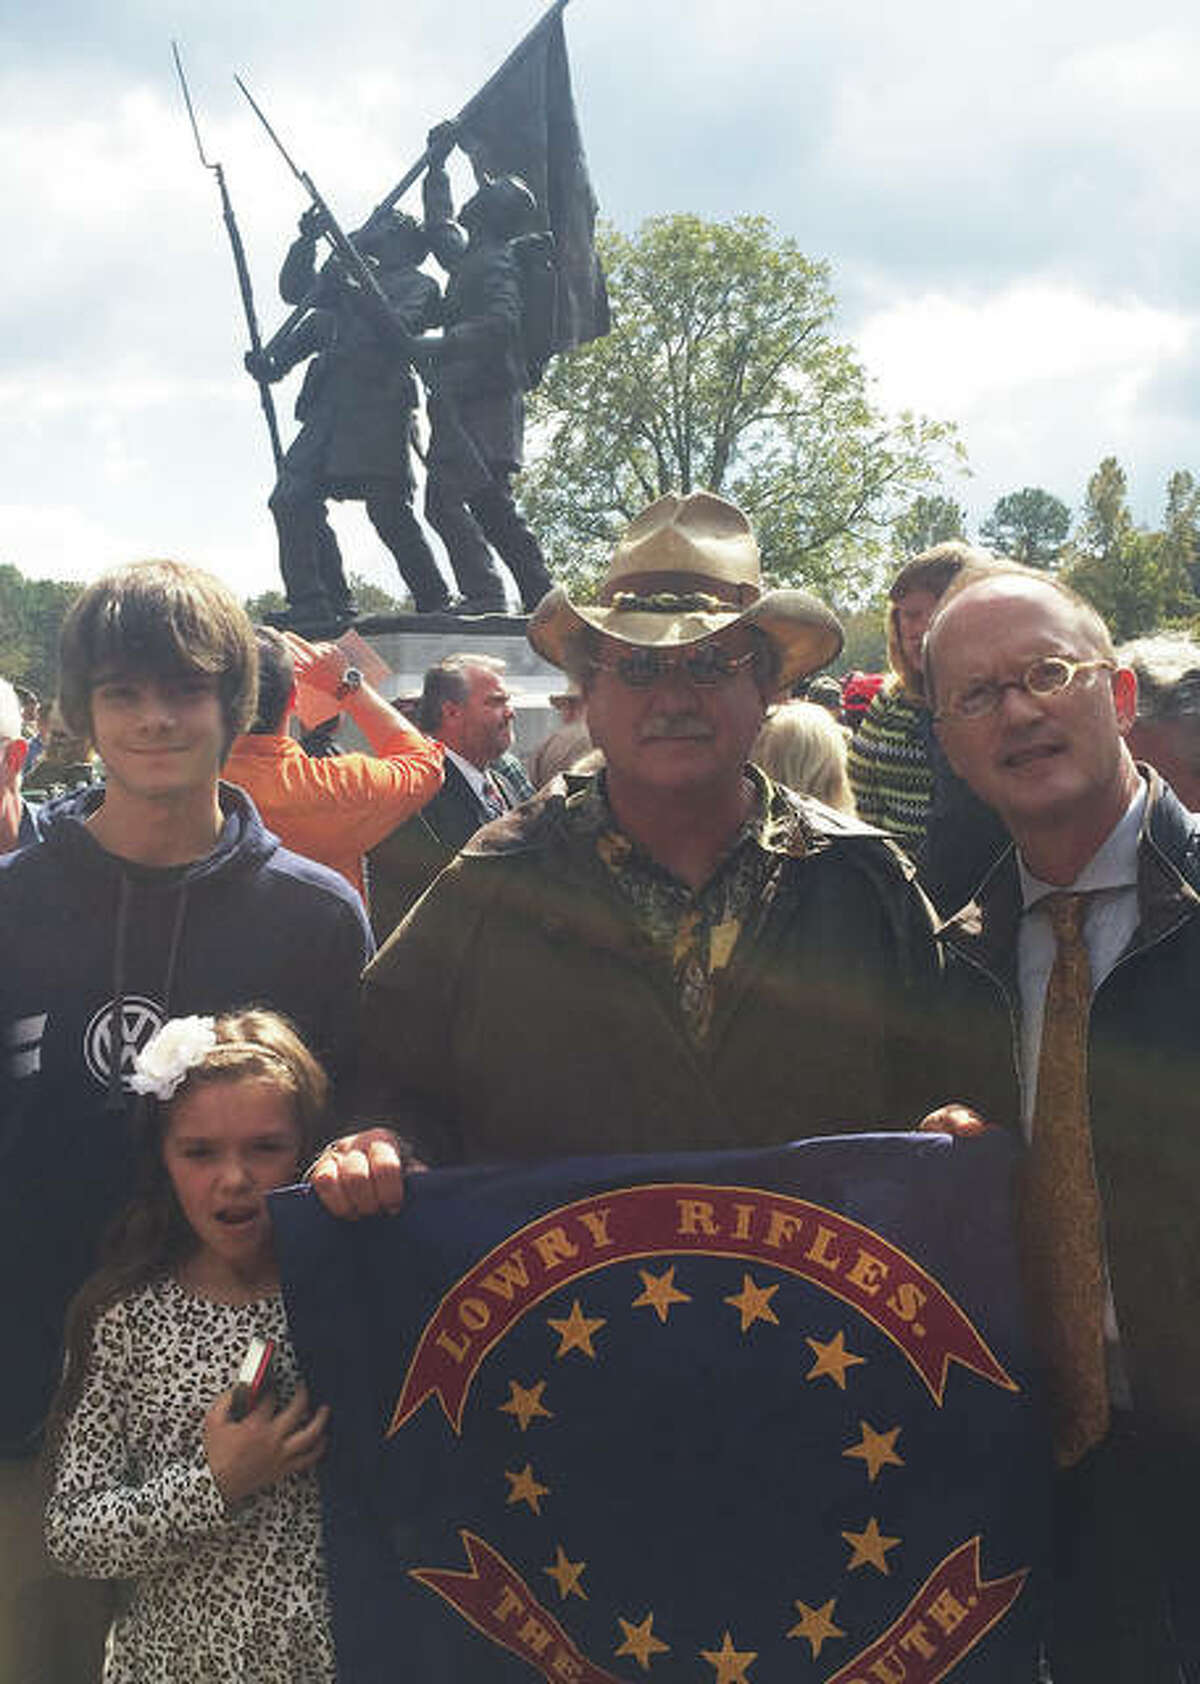 For The Telegraph Justin Ottolini, left, Maria Stanton, and John Stanton, center, at the dedication ceremony in Mississippi for the unveiling of a monument depicting their ancestor at Shiloh in Tennessee. They are posing with their ancestor's flag and with the monument's sculptor.